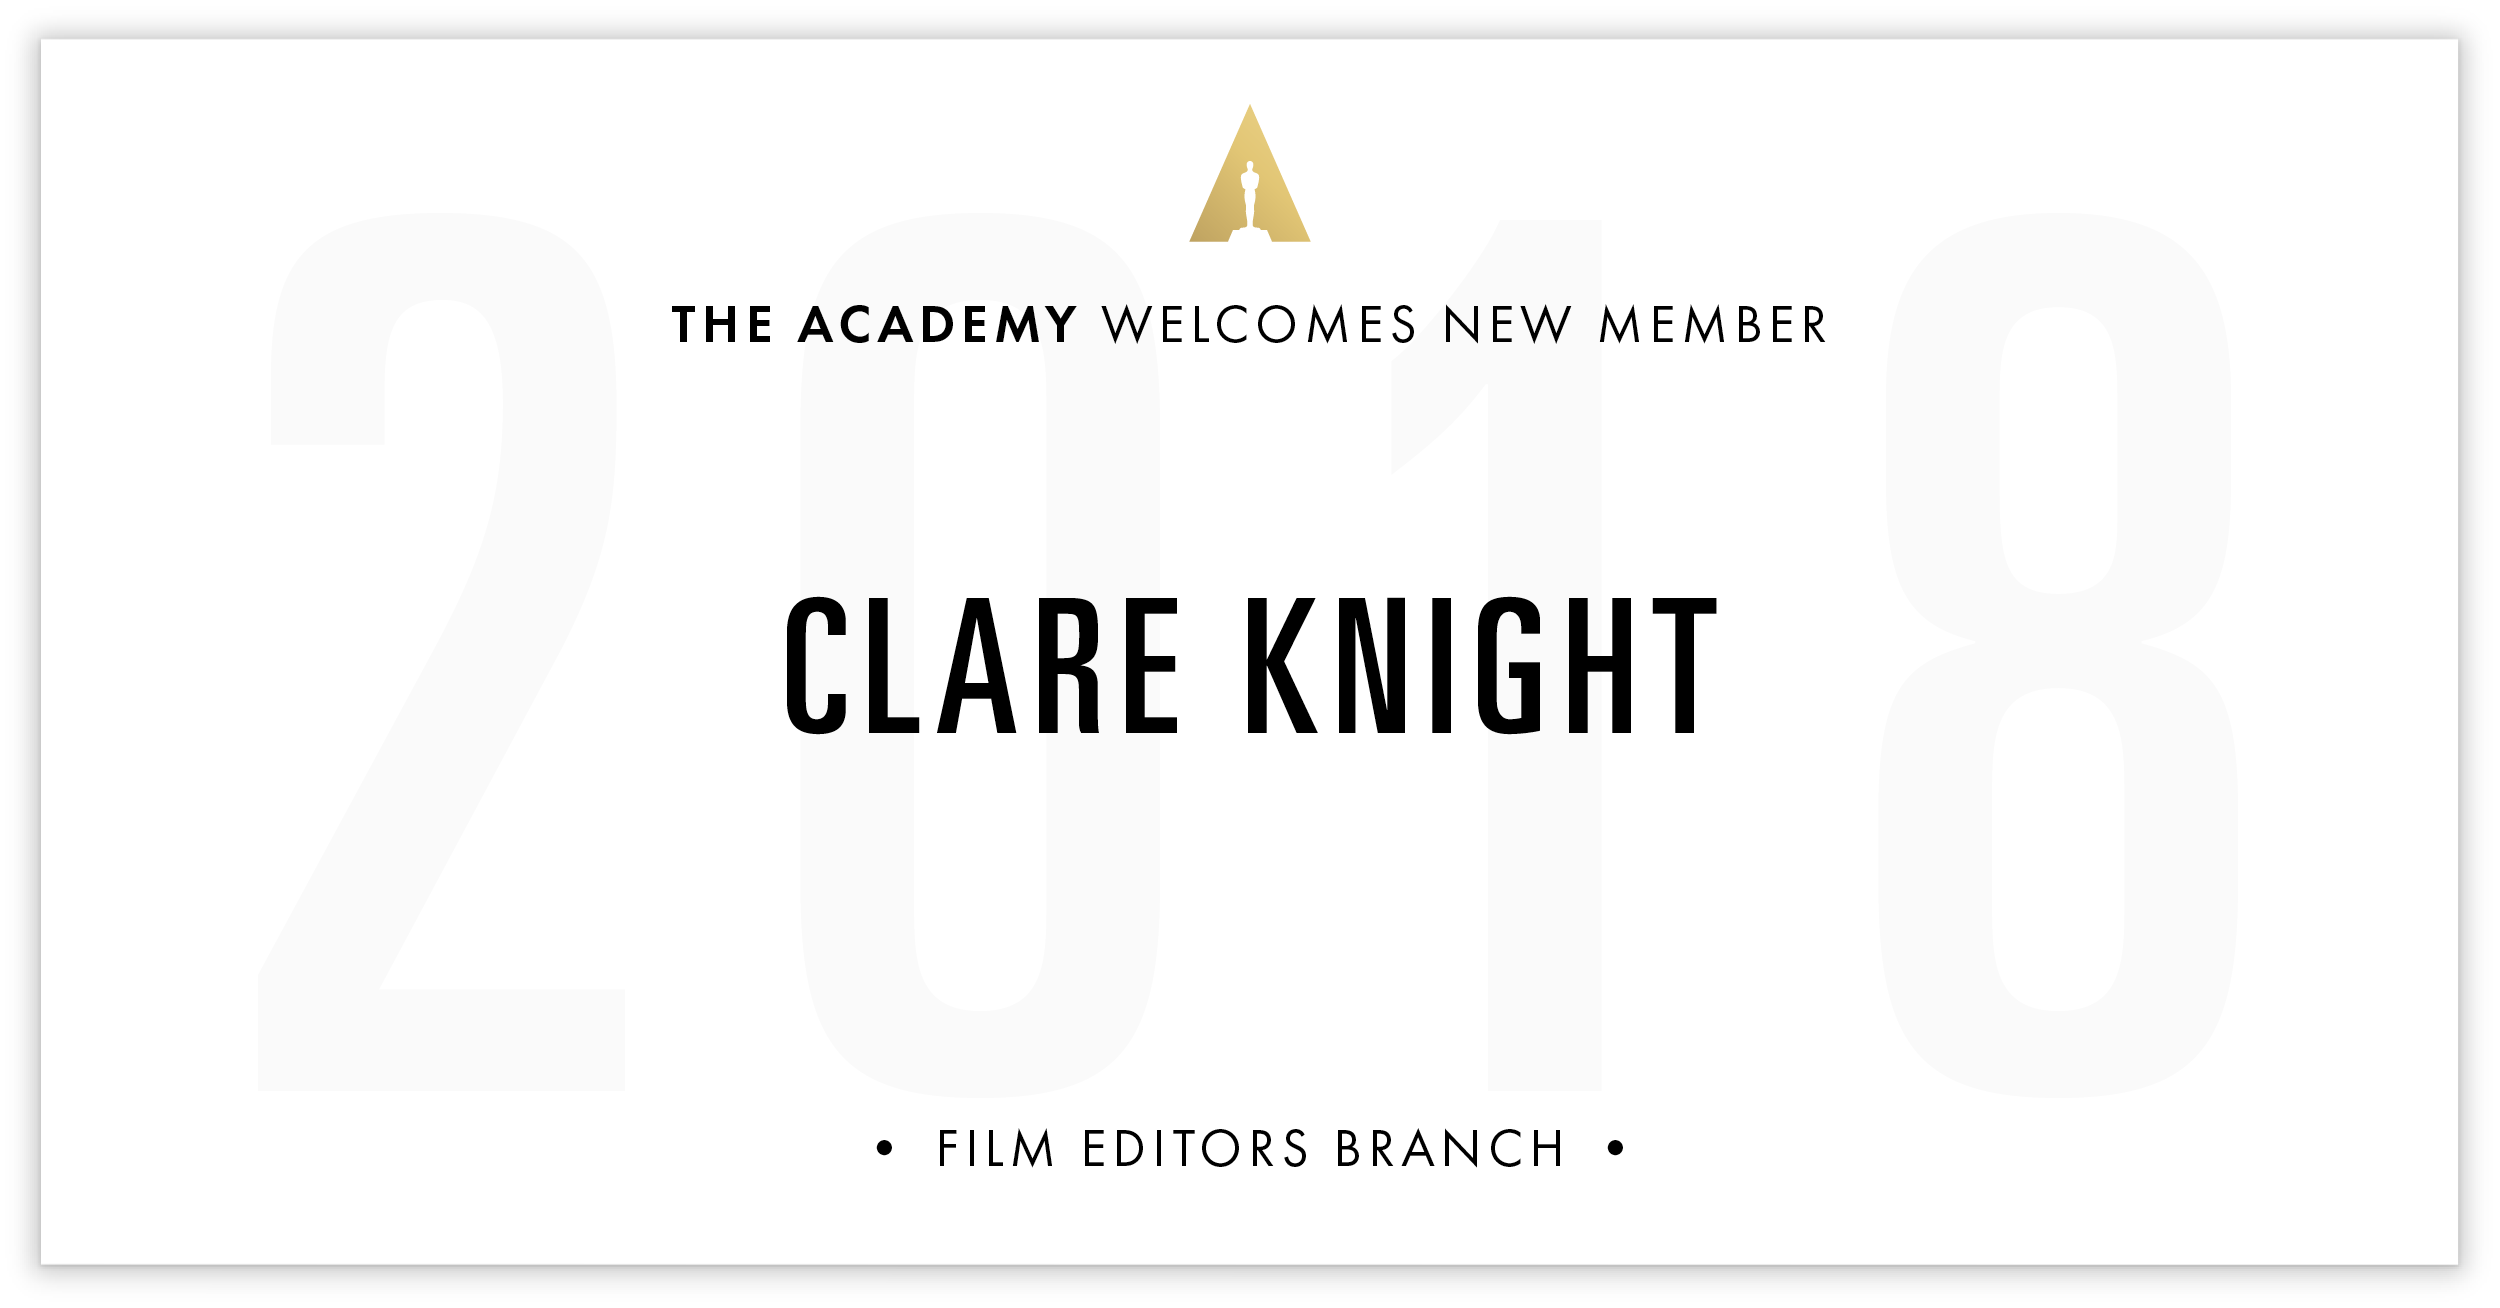 Clare Knight is invited!